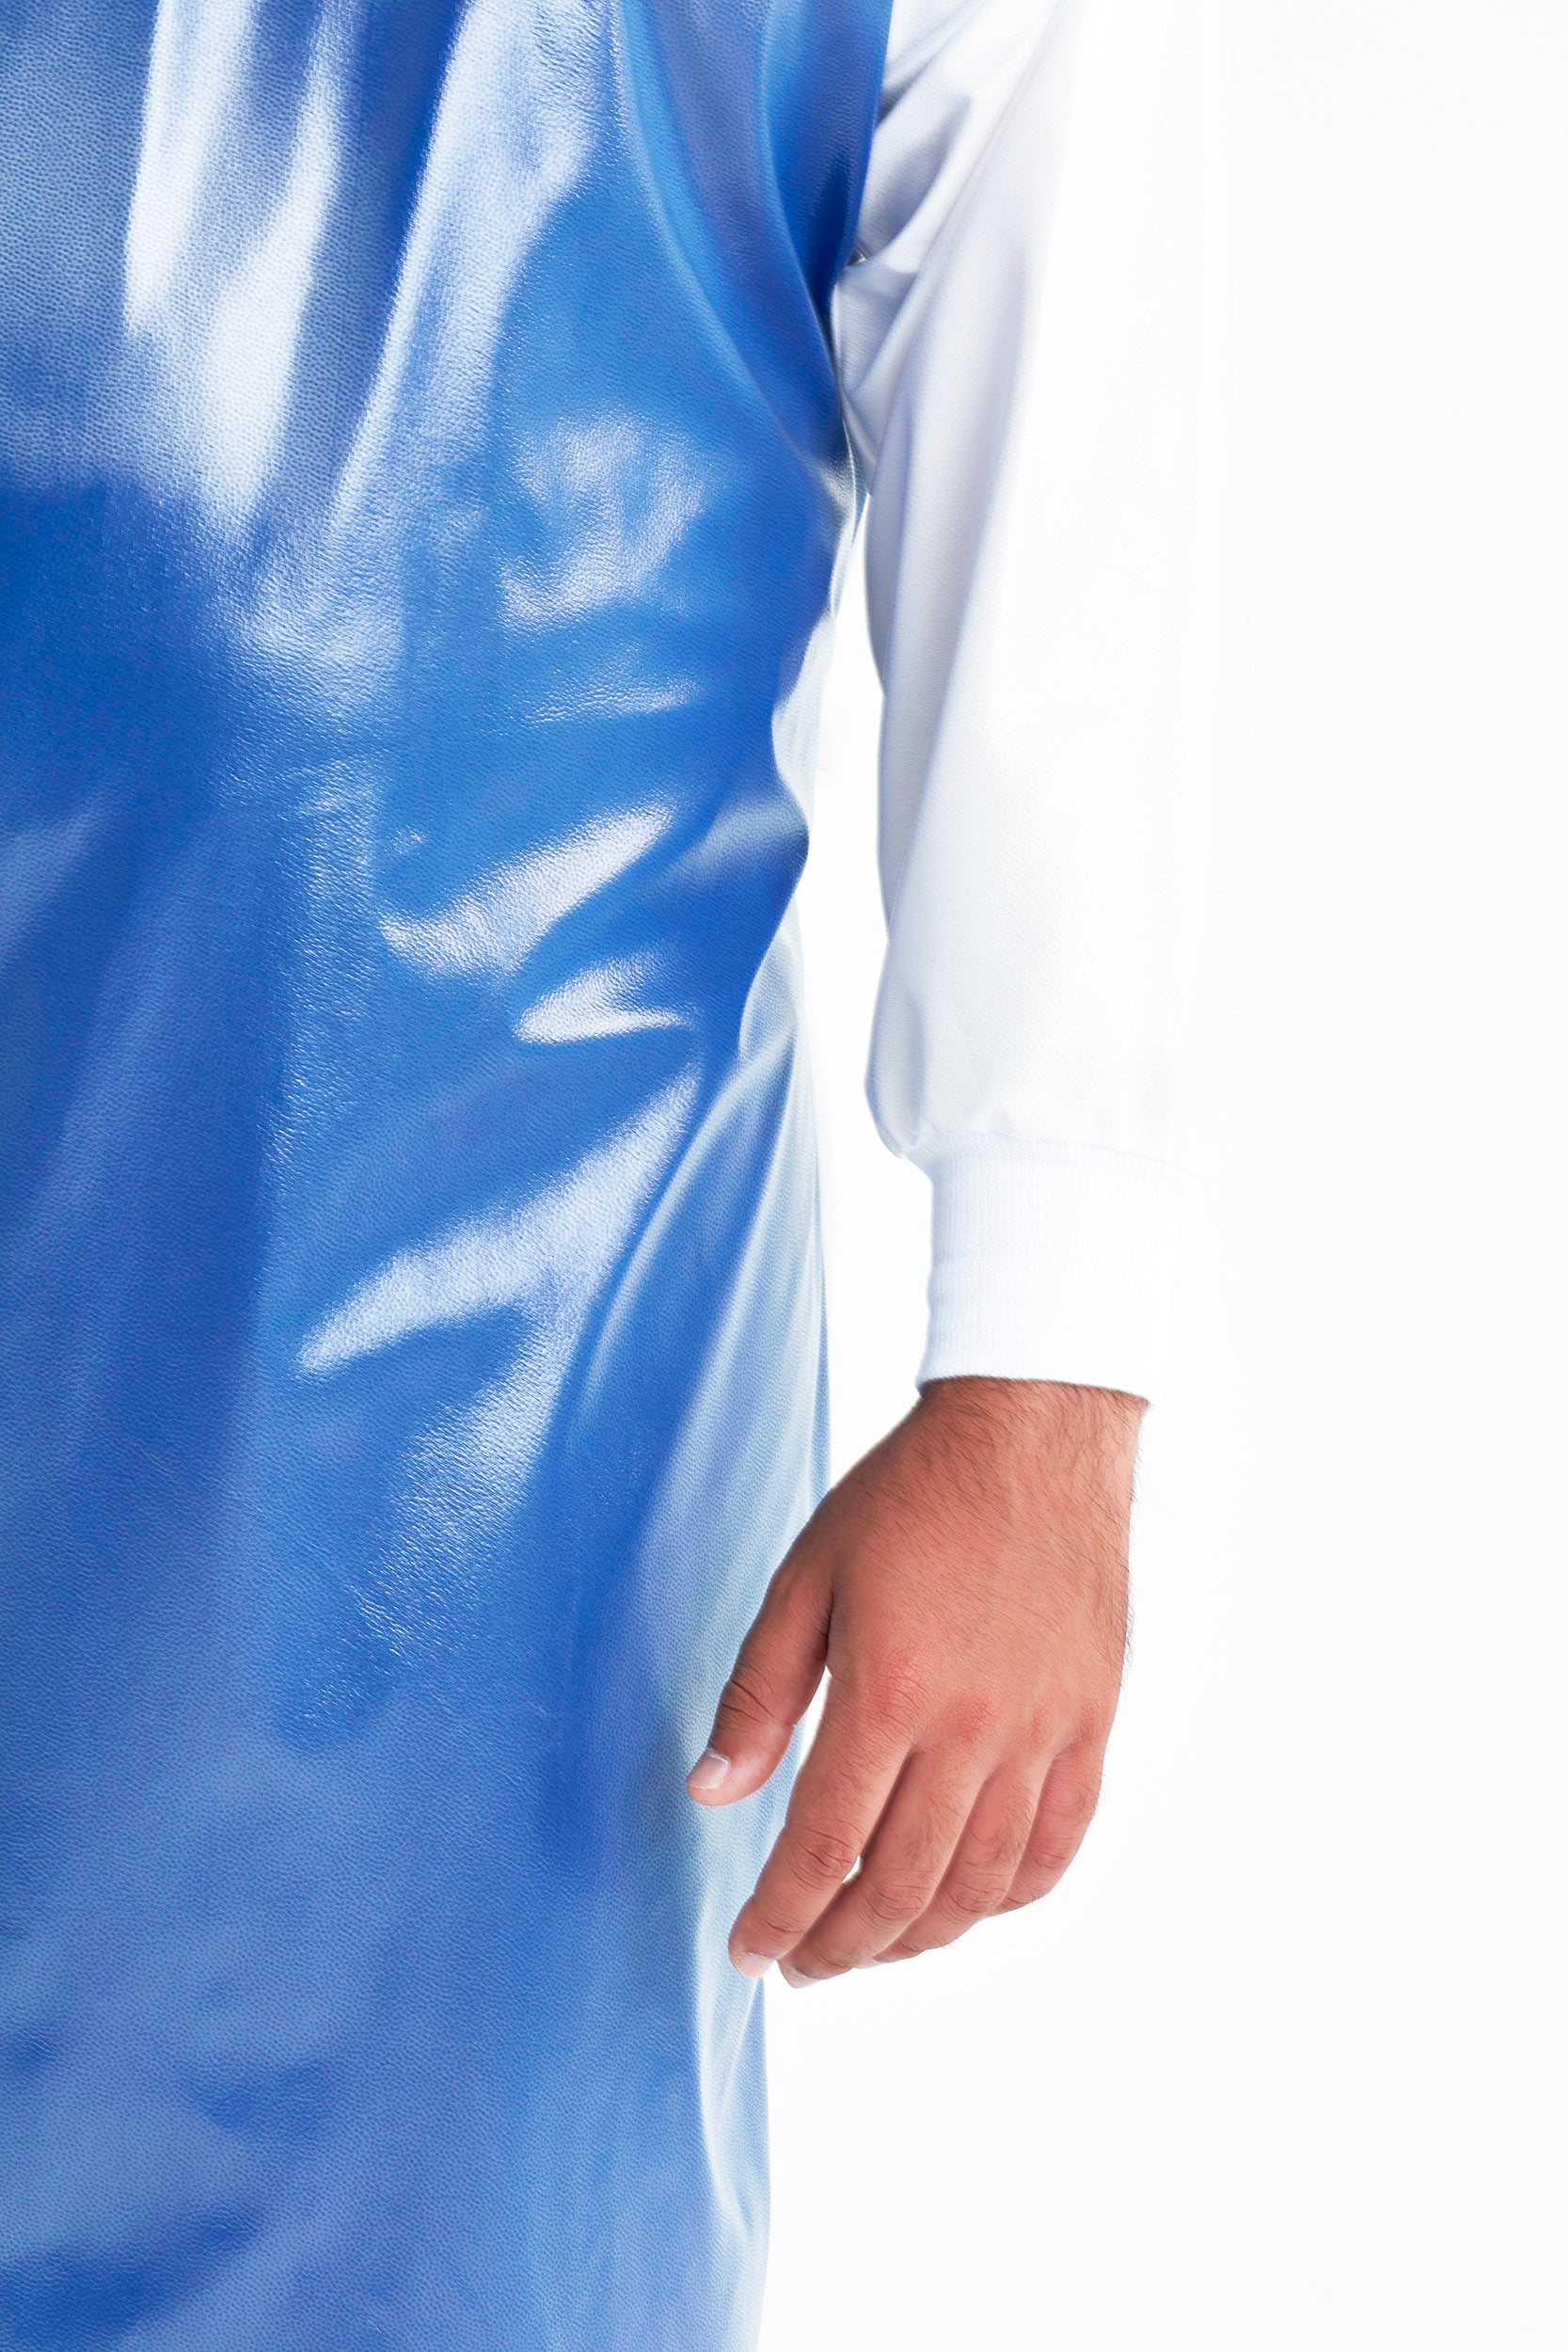 cuff-and-sleeve-display-of-royal-blue-white-reusable-level-3-gown